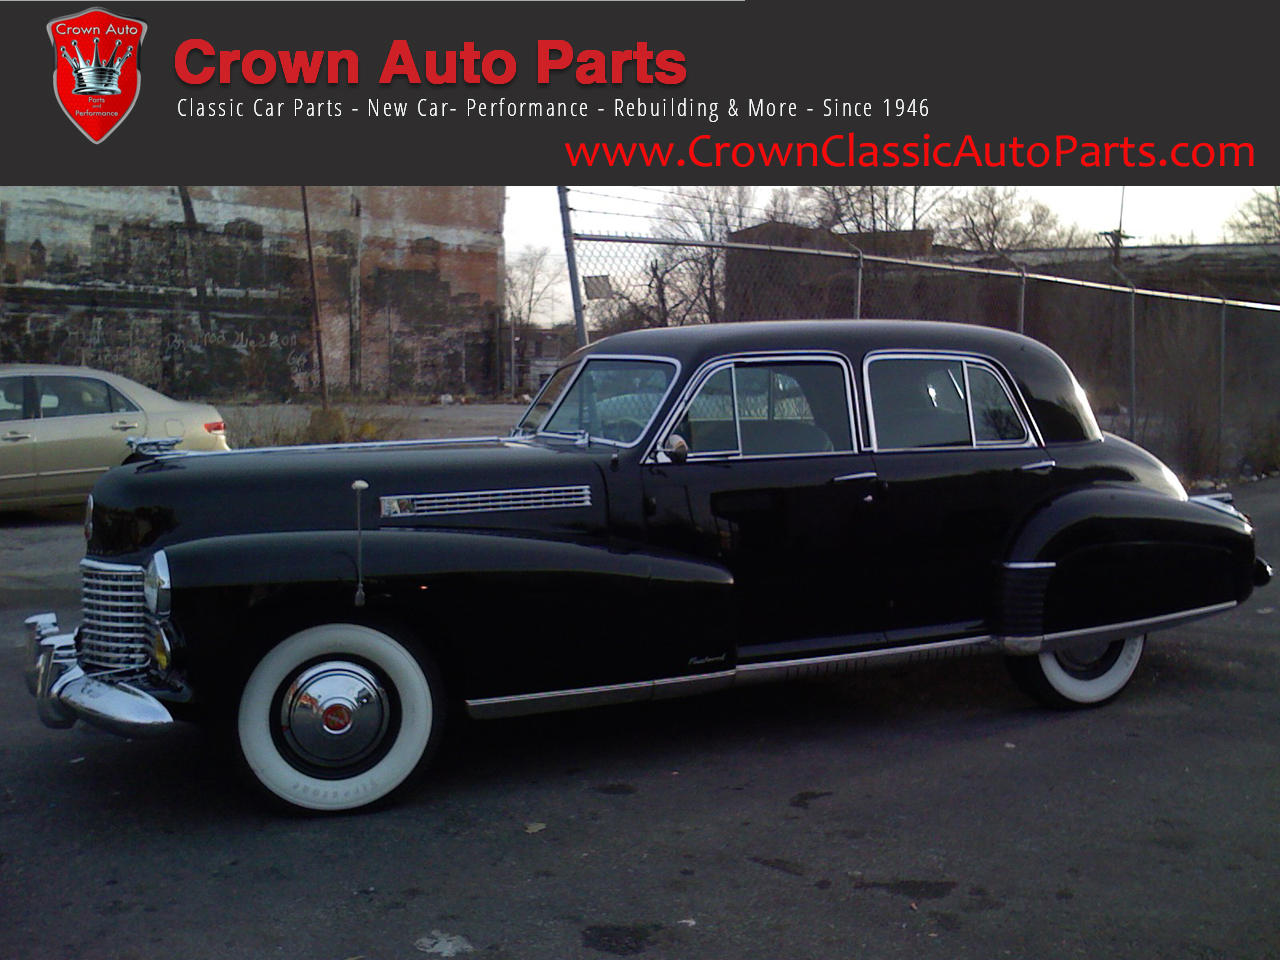 Crown Auto Parts & Rebuilding image 33